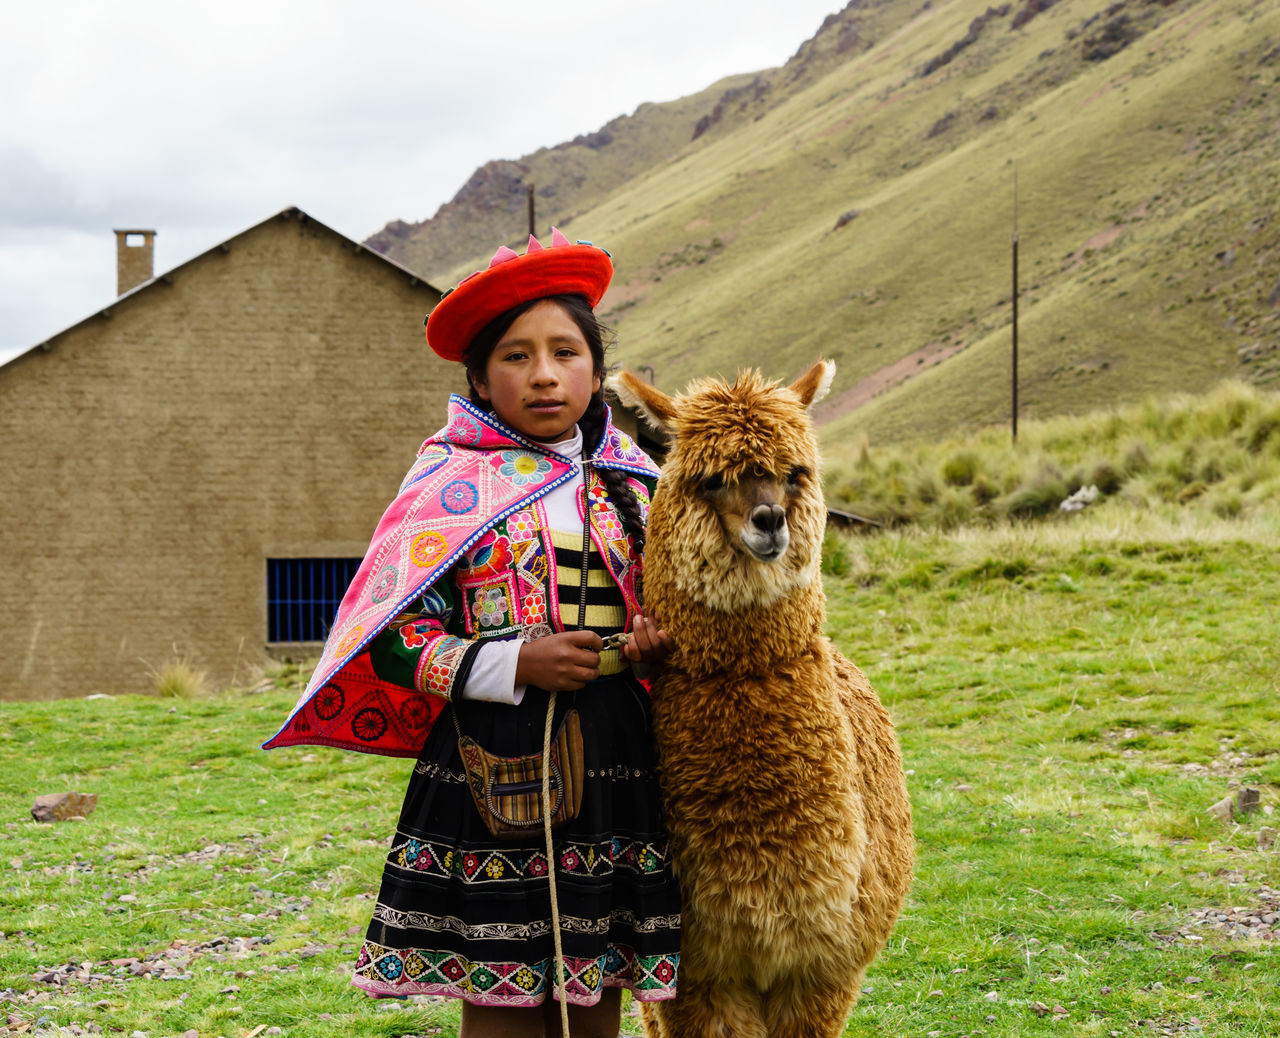 Altitude America Anden Cocktails Cusco Women Who Inspire You Express High Historical Sights International Landmark La Raya Haircut Lama Music Old People Peru Peru Rail Puno Rail South Traditional Train Train Tracks Travel Showcase March